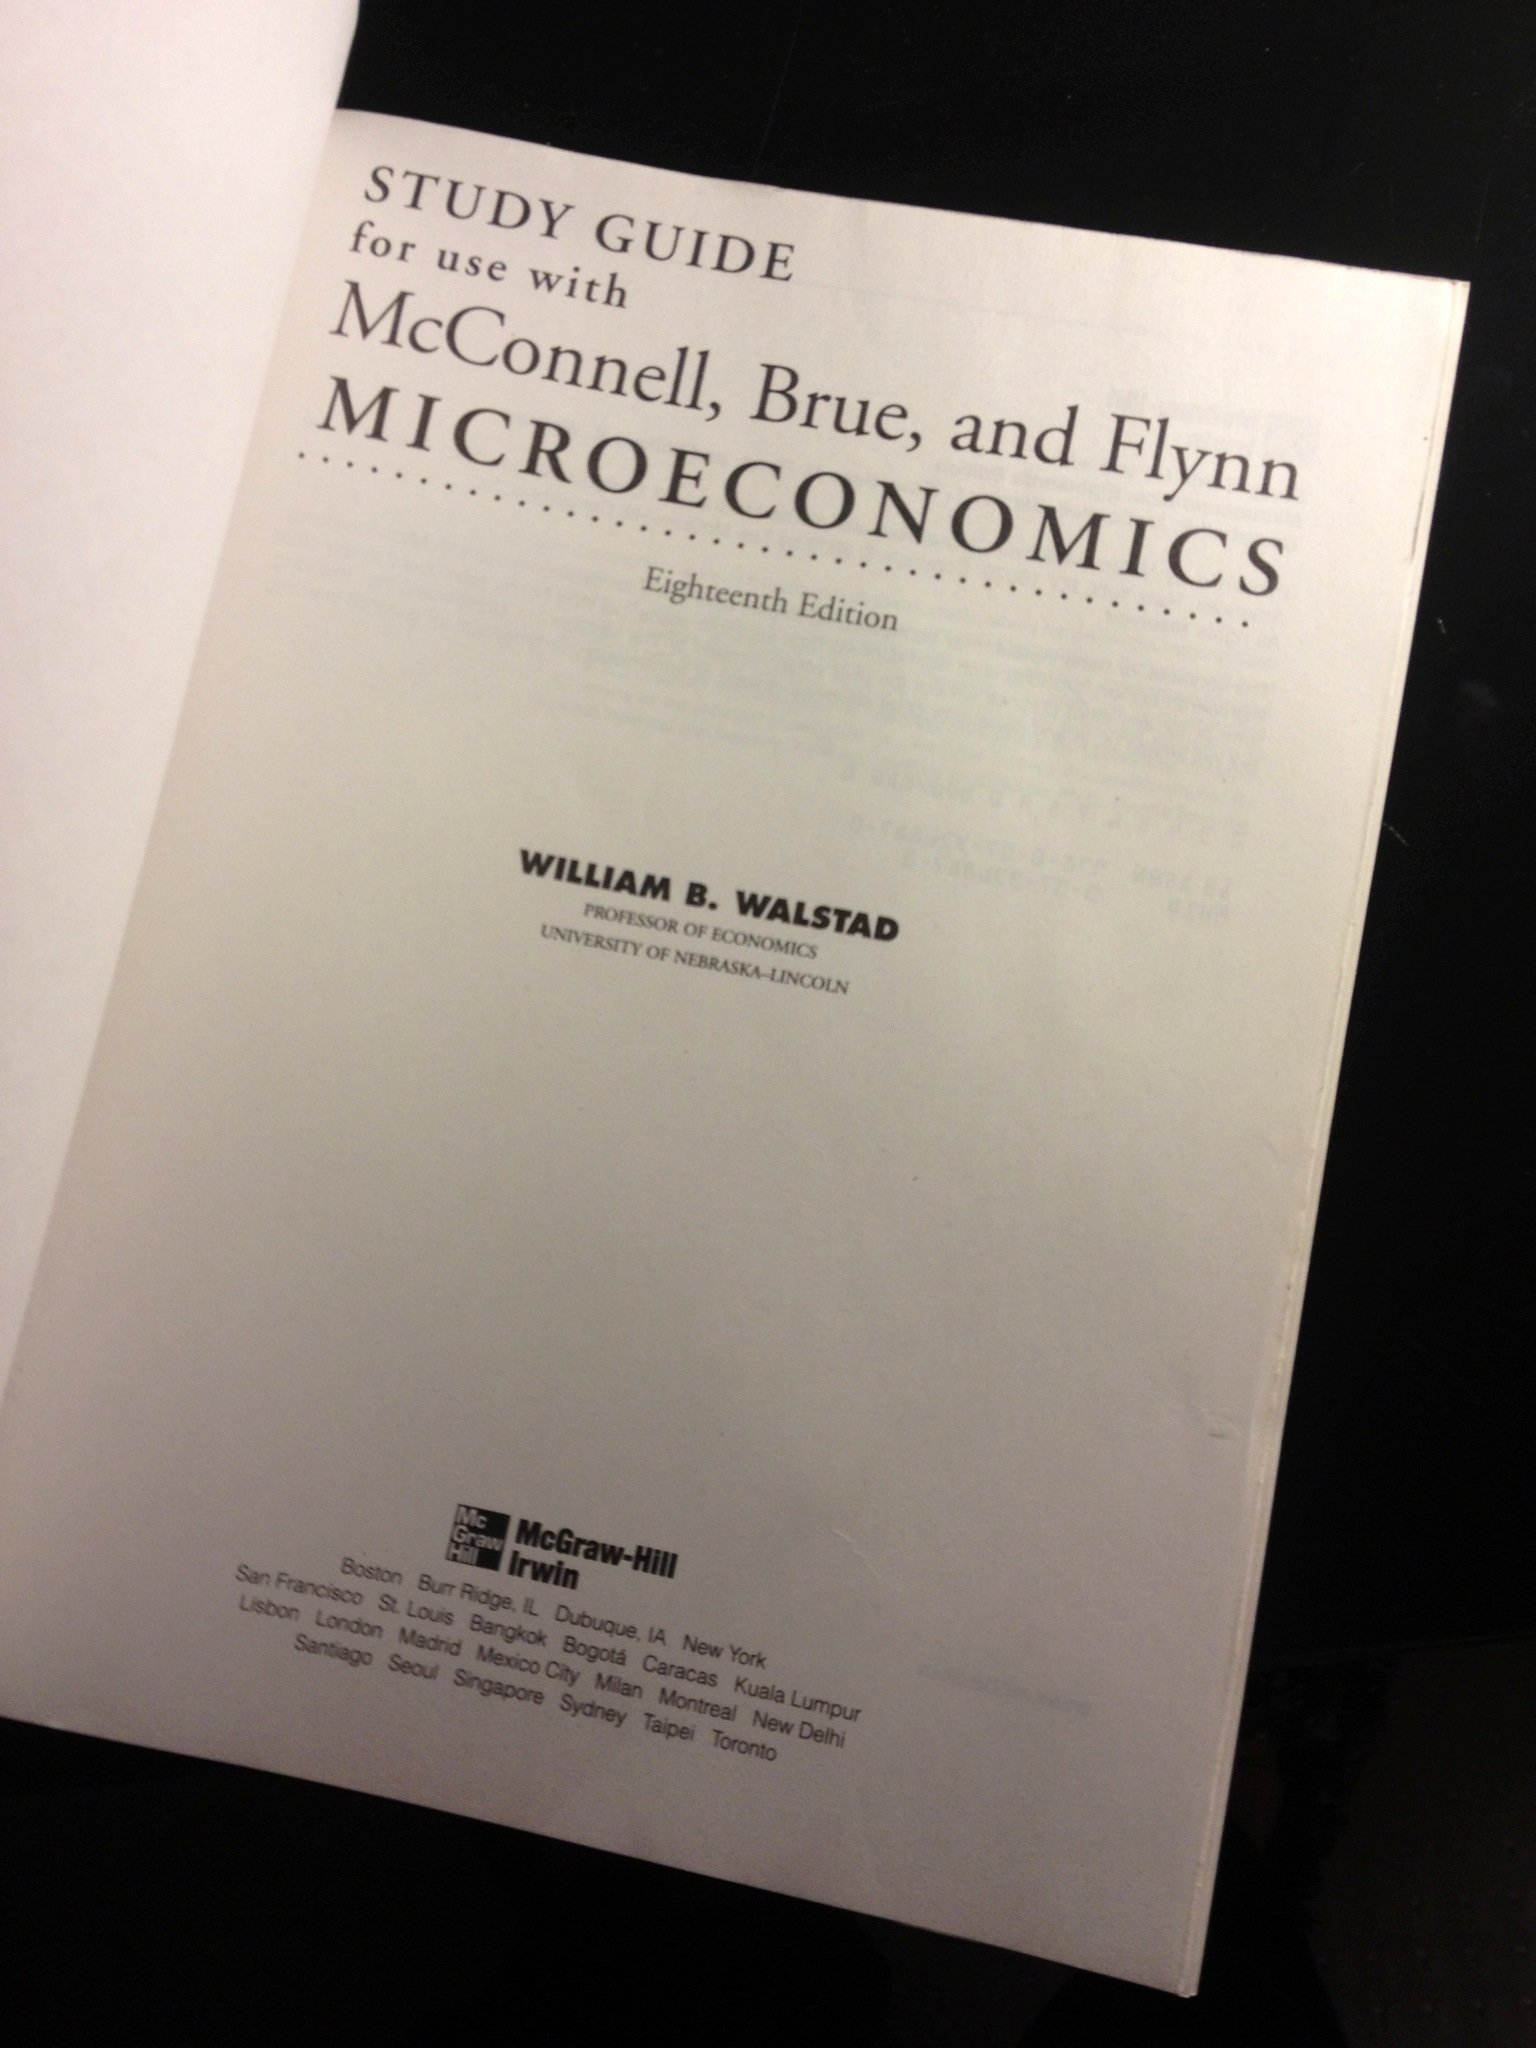 (McGraw-Hill) Study Guide For Use With Microeconomics: Stanley L. Brue,  Sean M. Flynn, and William B. Walstad Campbell R. McConnell: 9780073368870:  ...